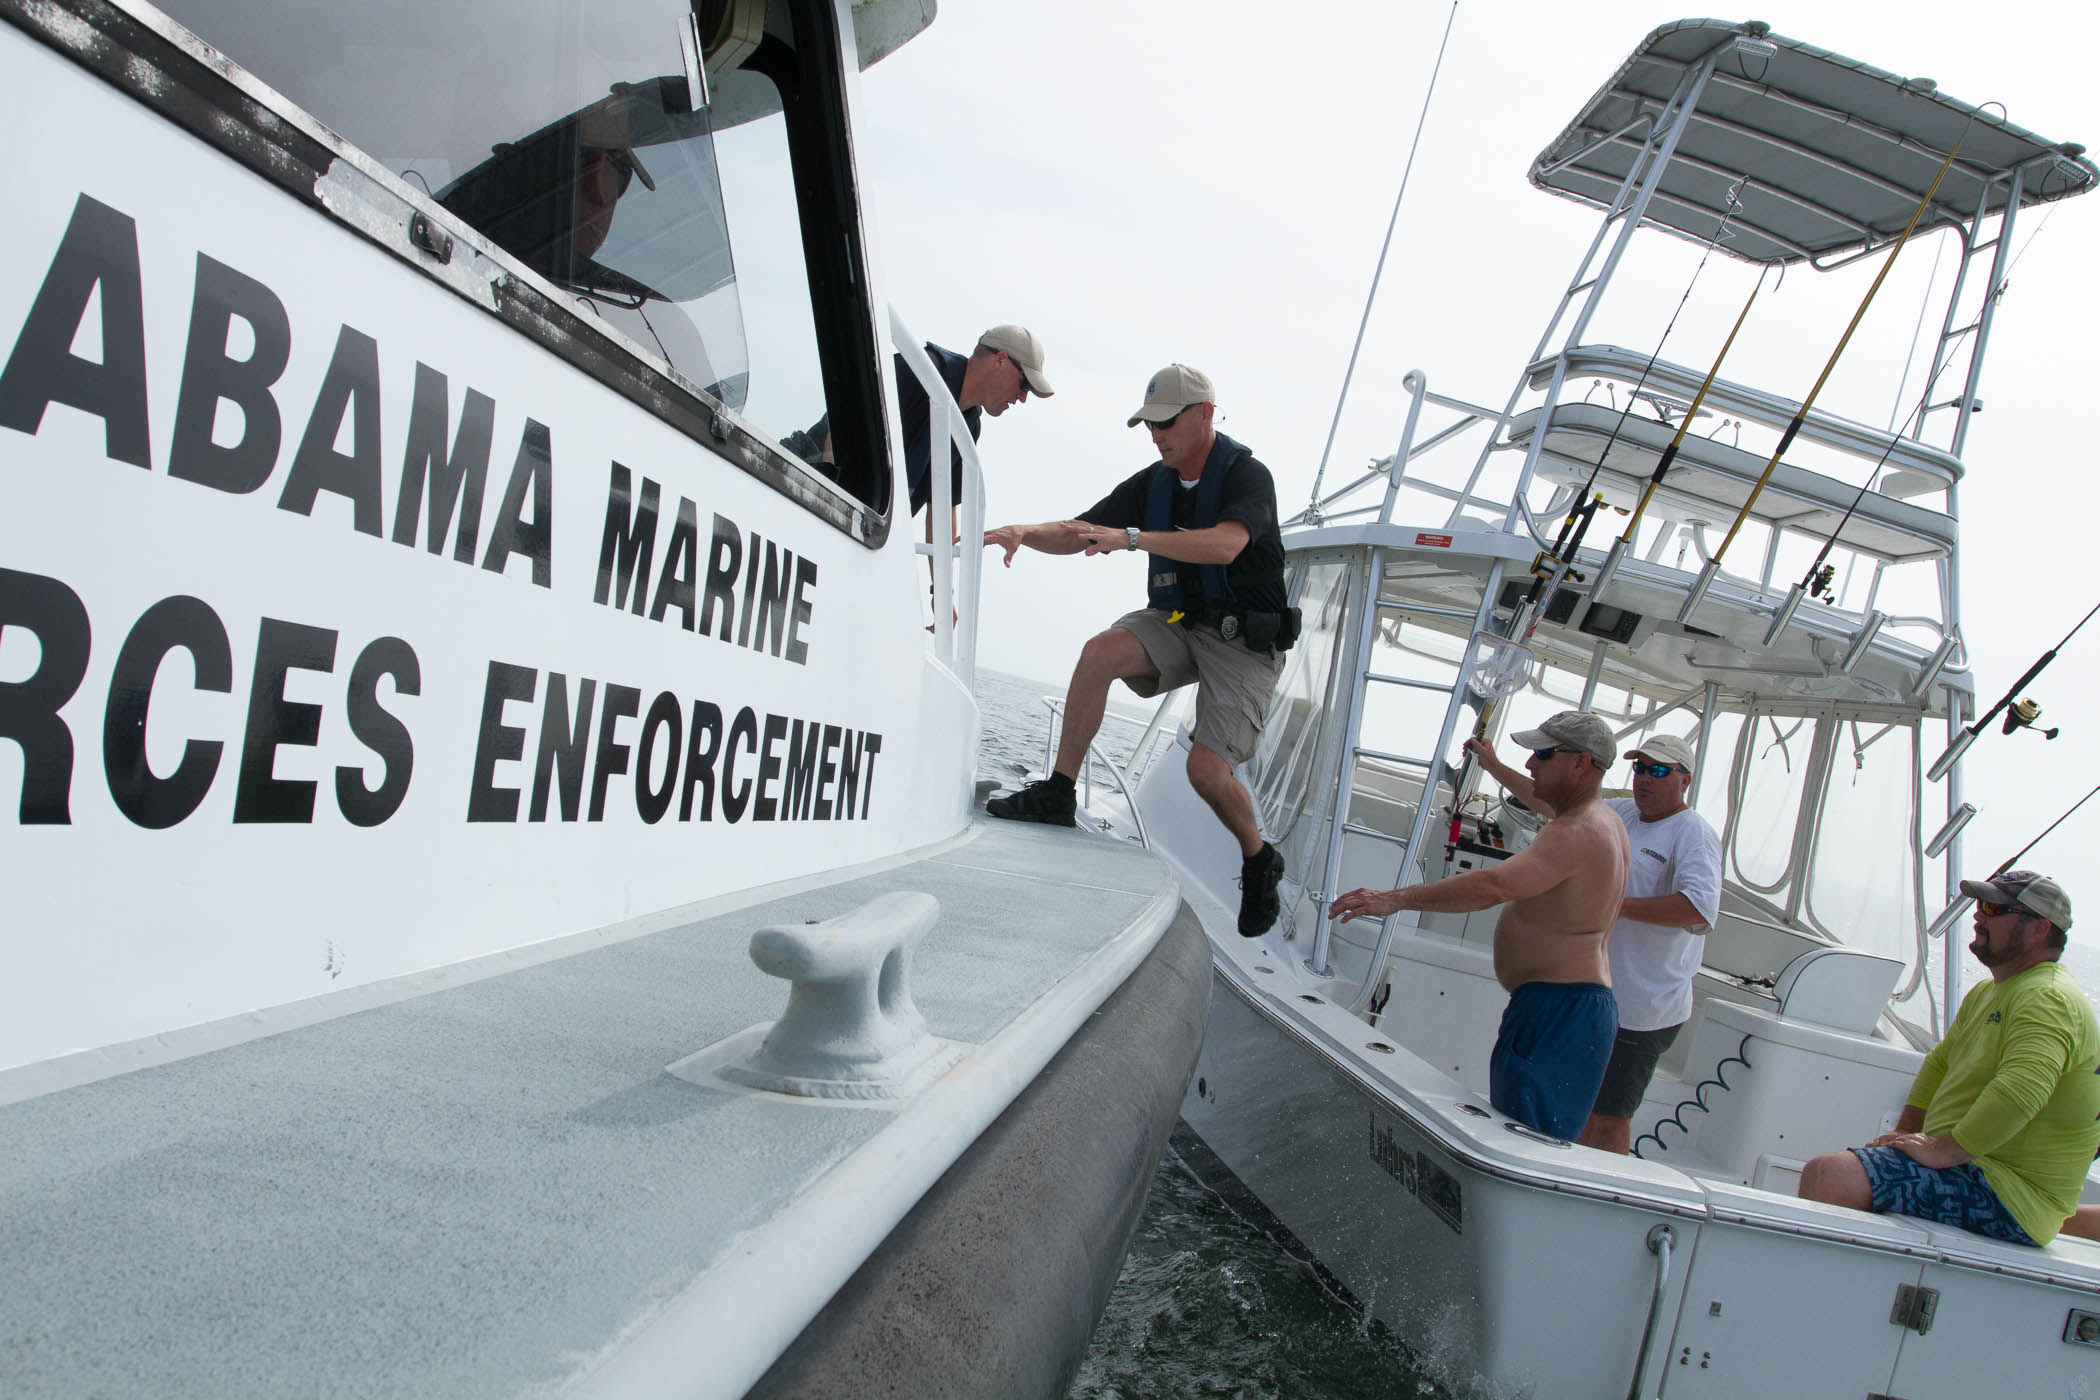 When approached by a conservation enforcement officer for Alabama non resident saltwater fishing license